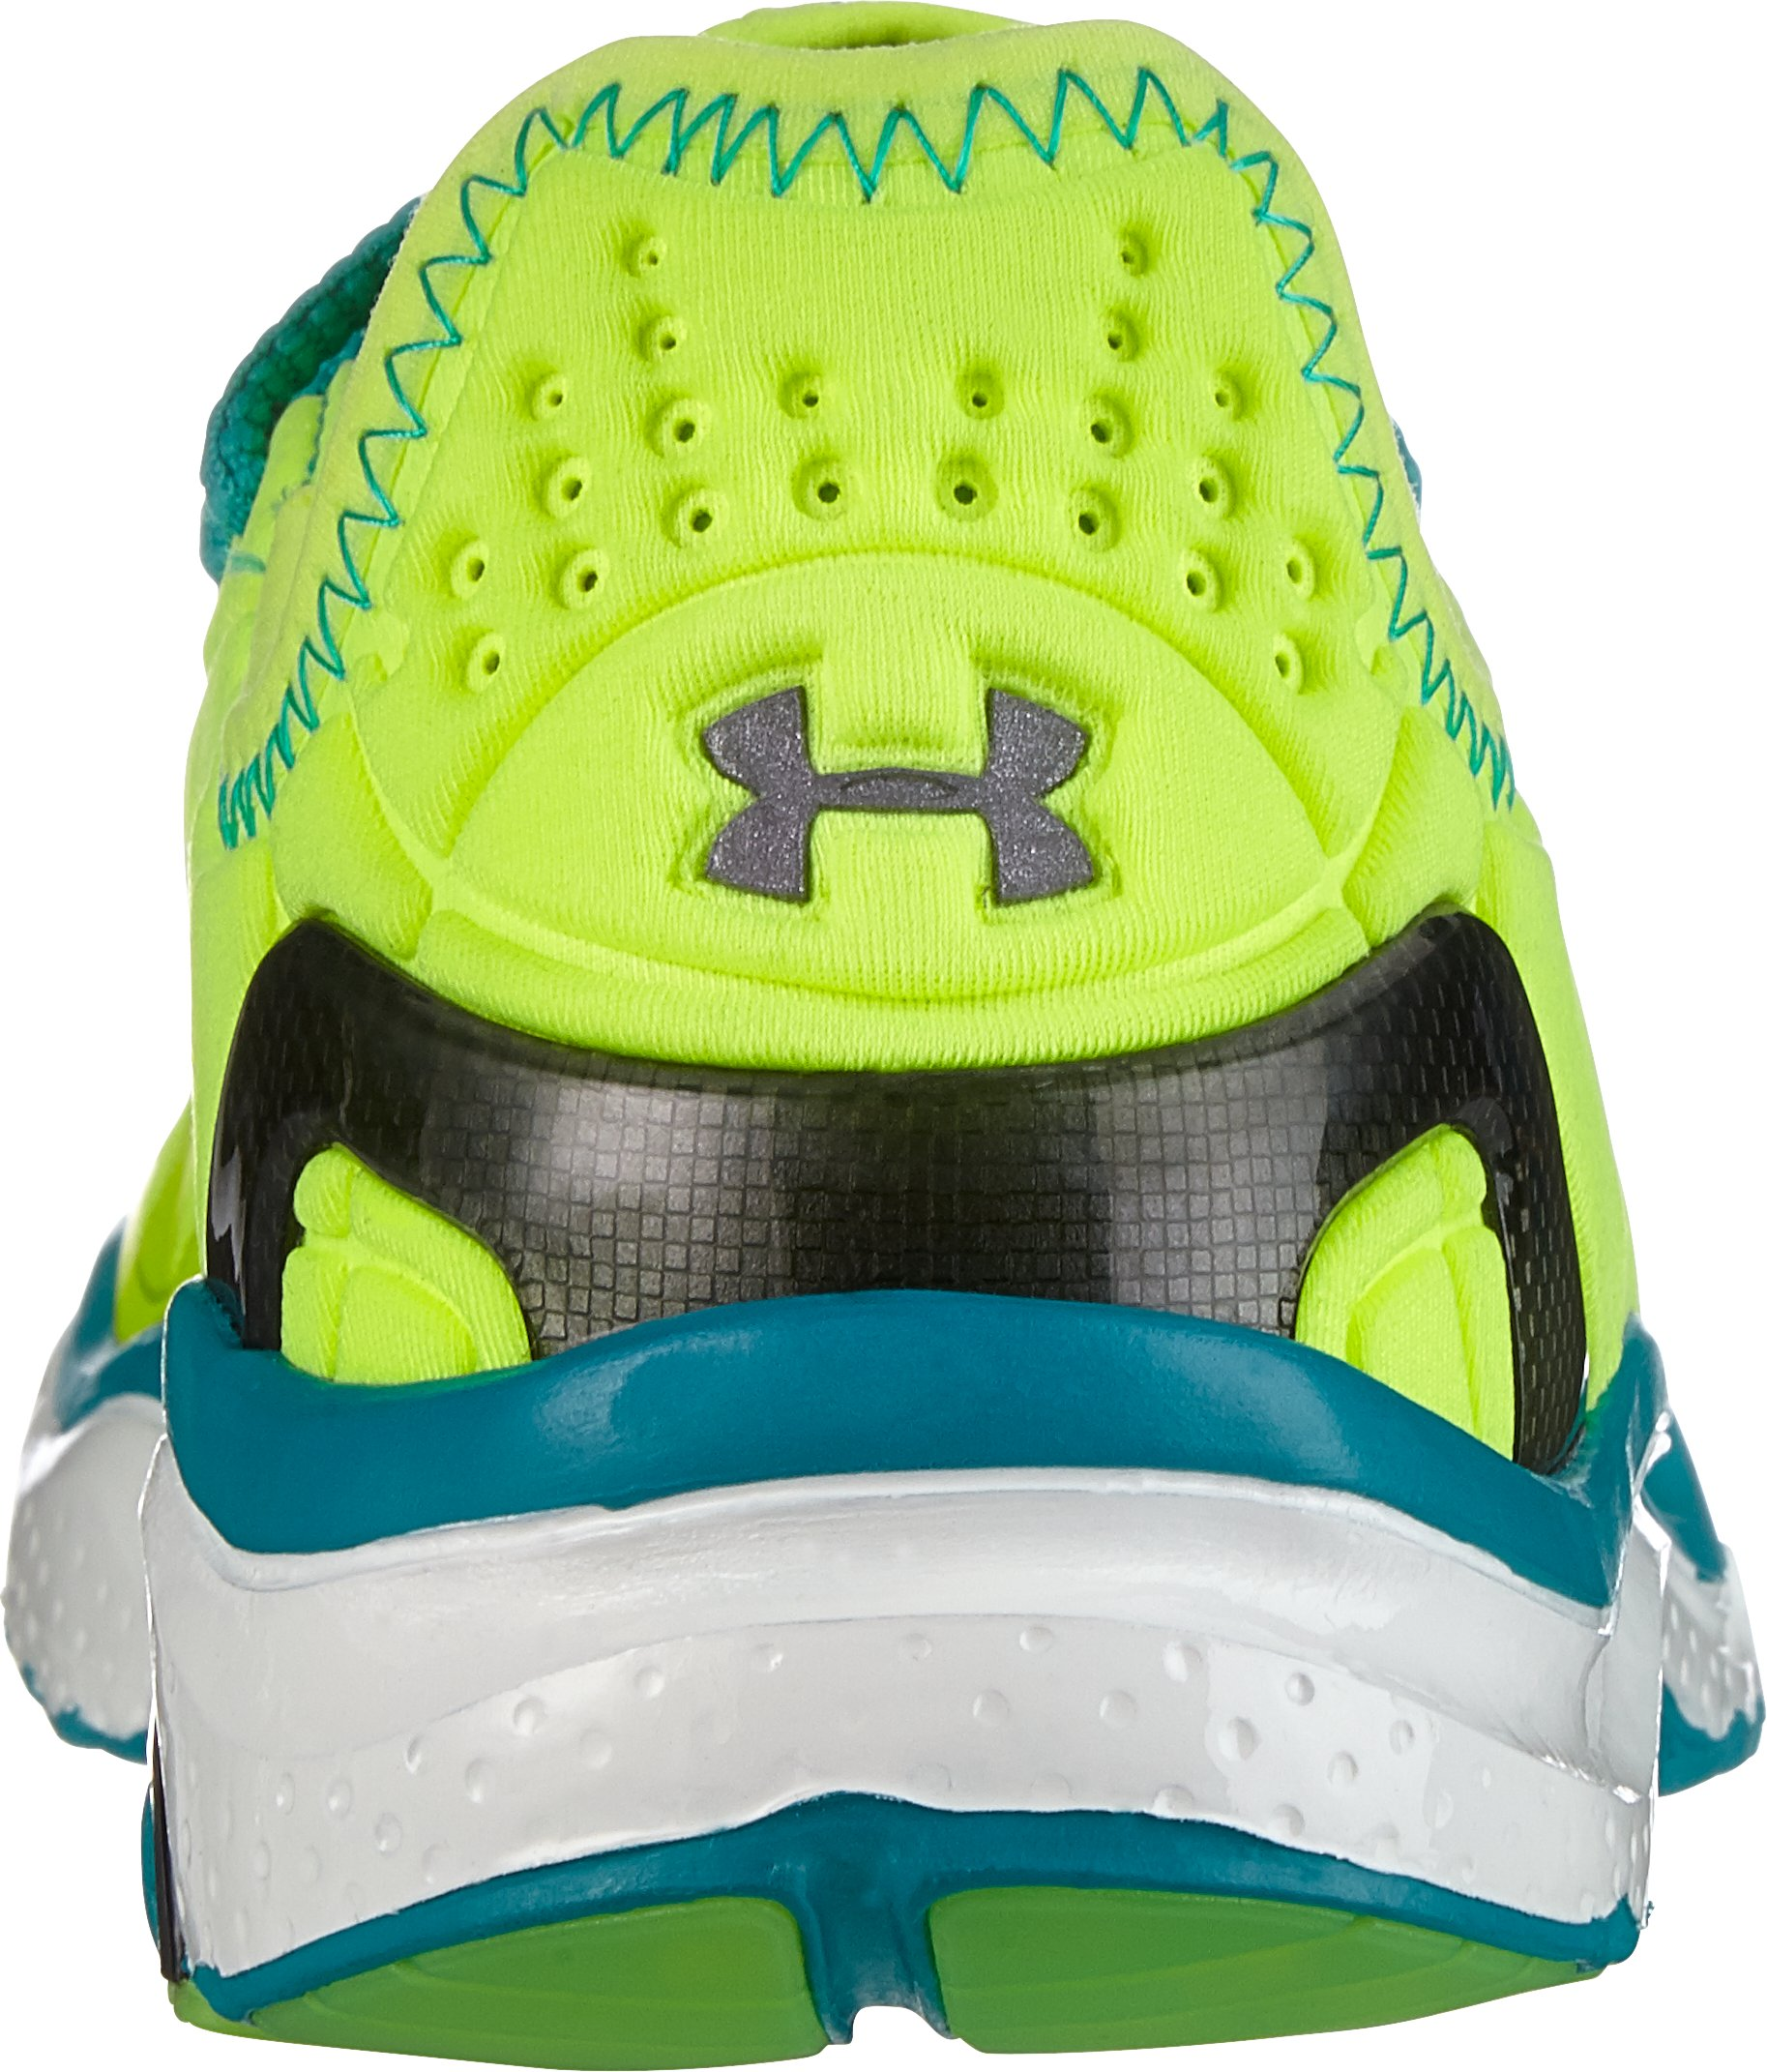 Women's Charge RC 2 Running Shoe, High-Vis Yellow